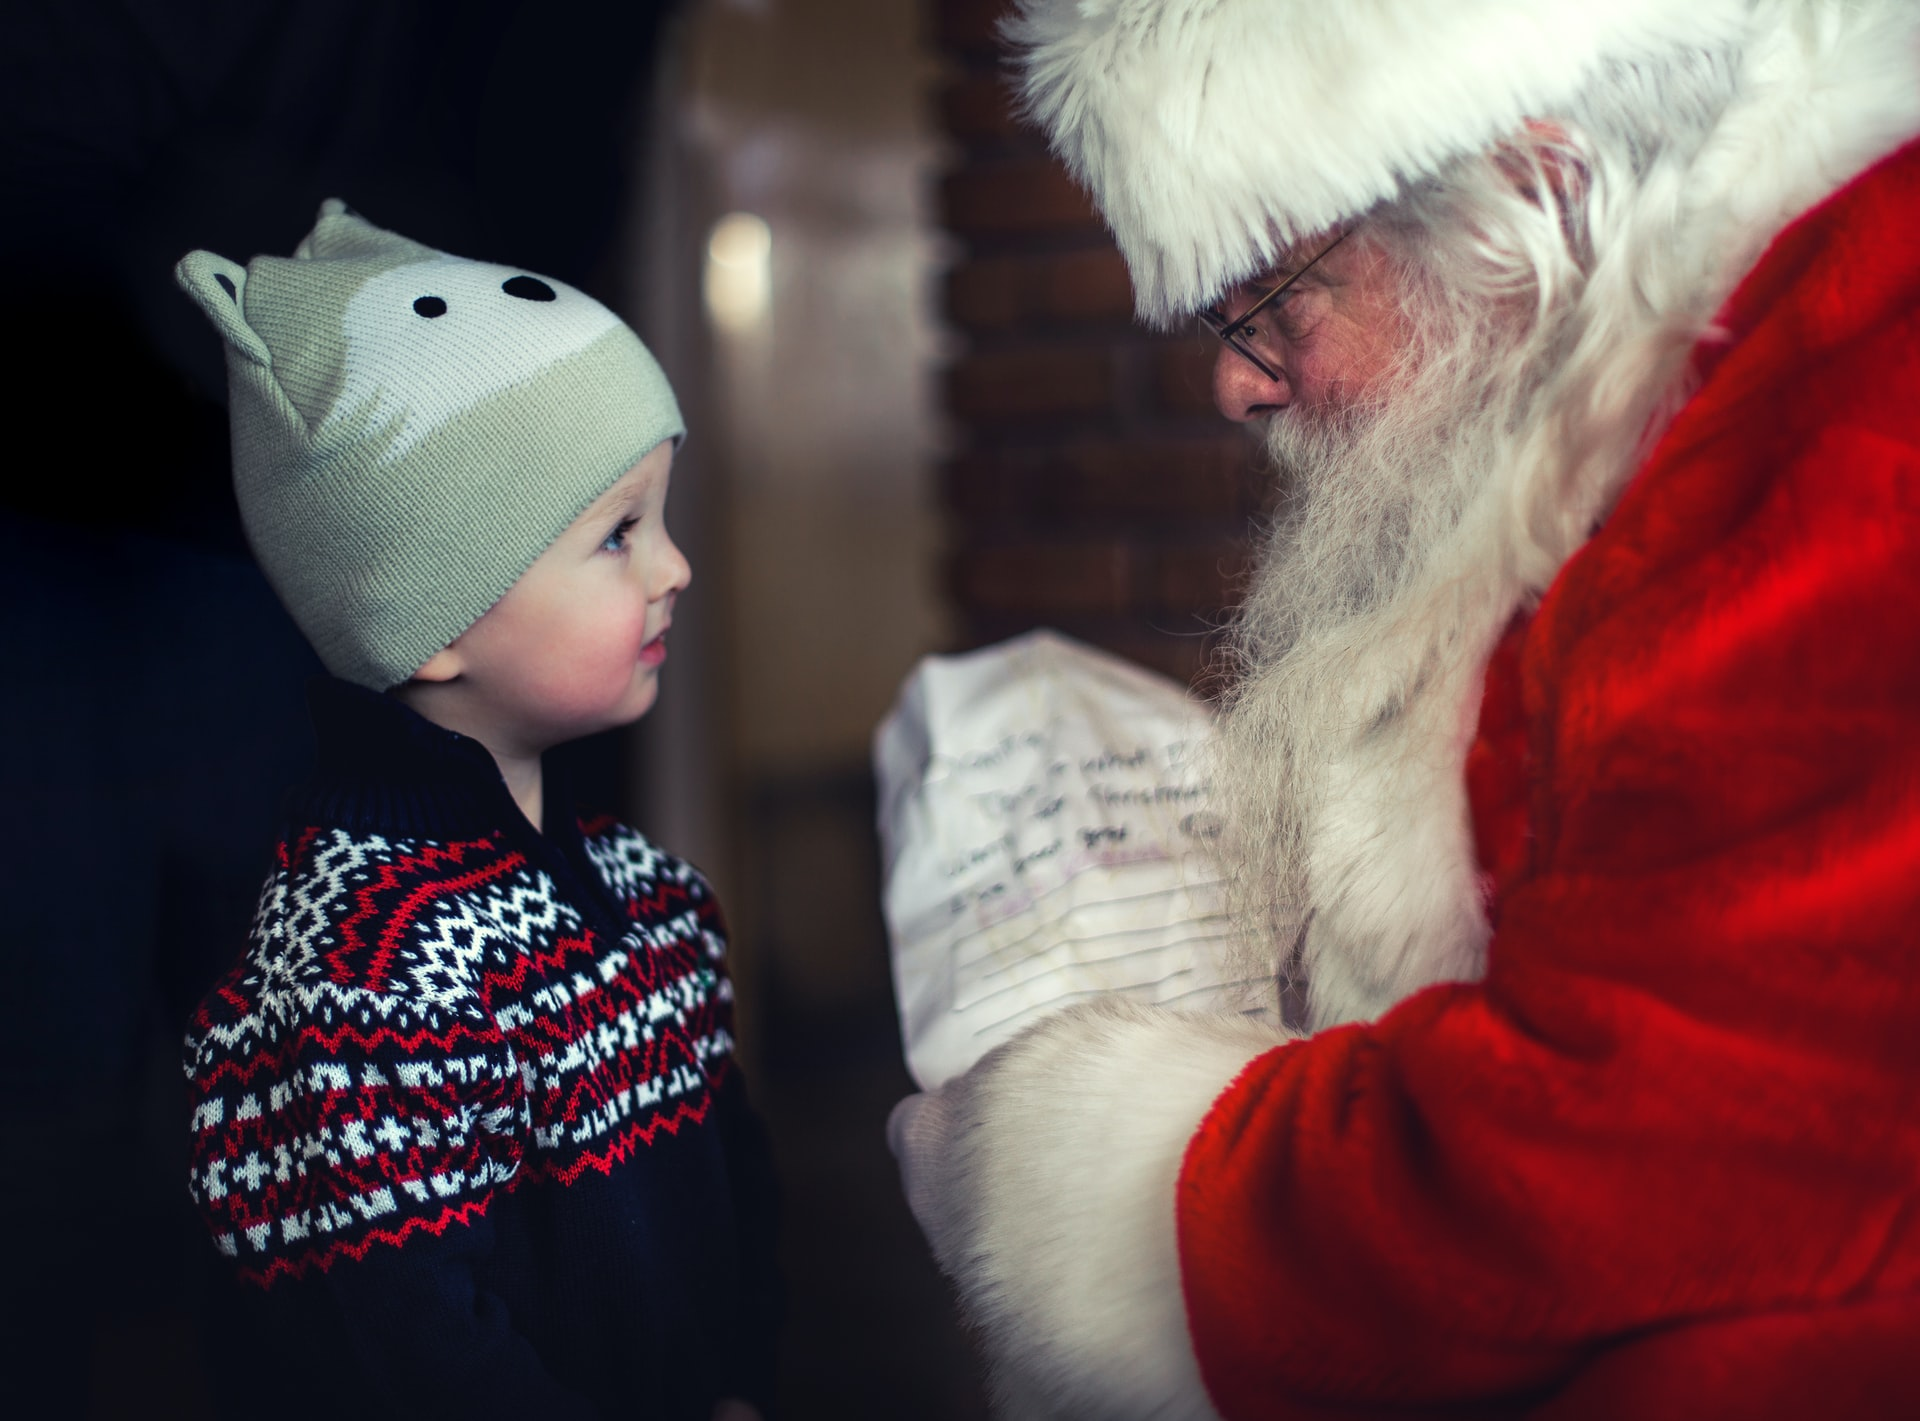 Defending Santa Claus: A Child's Last Hope